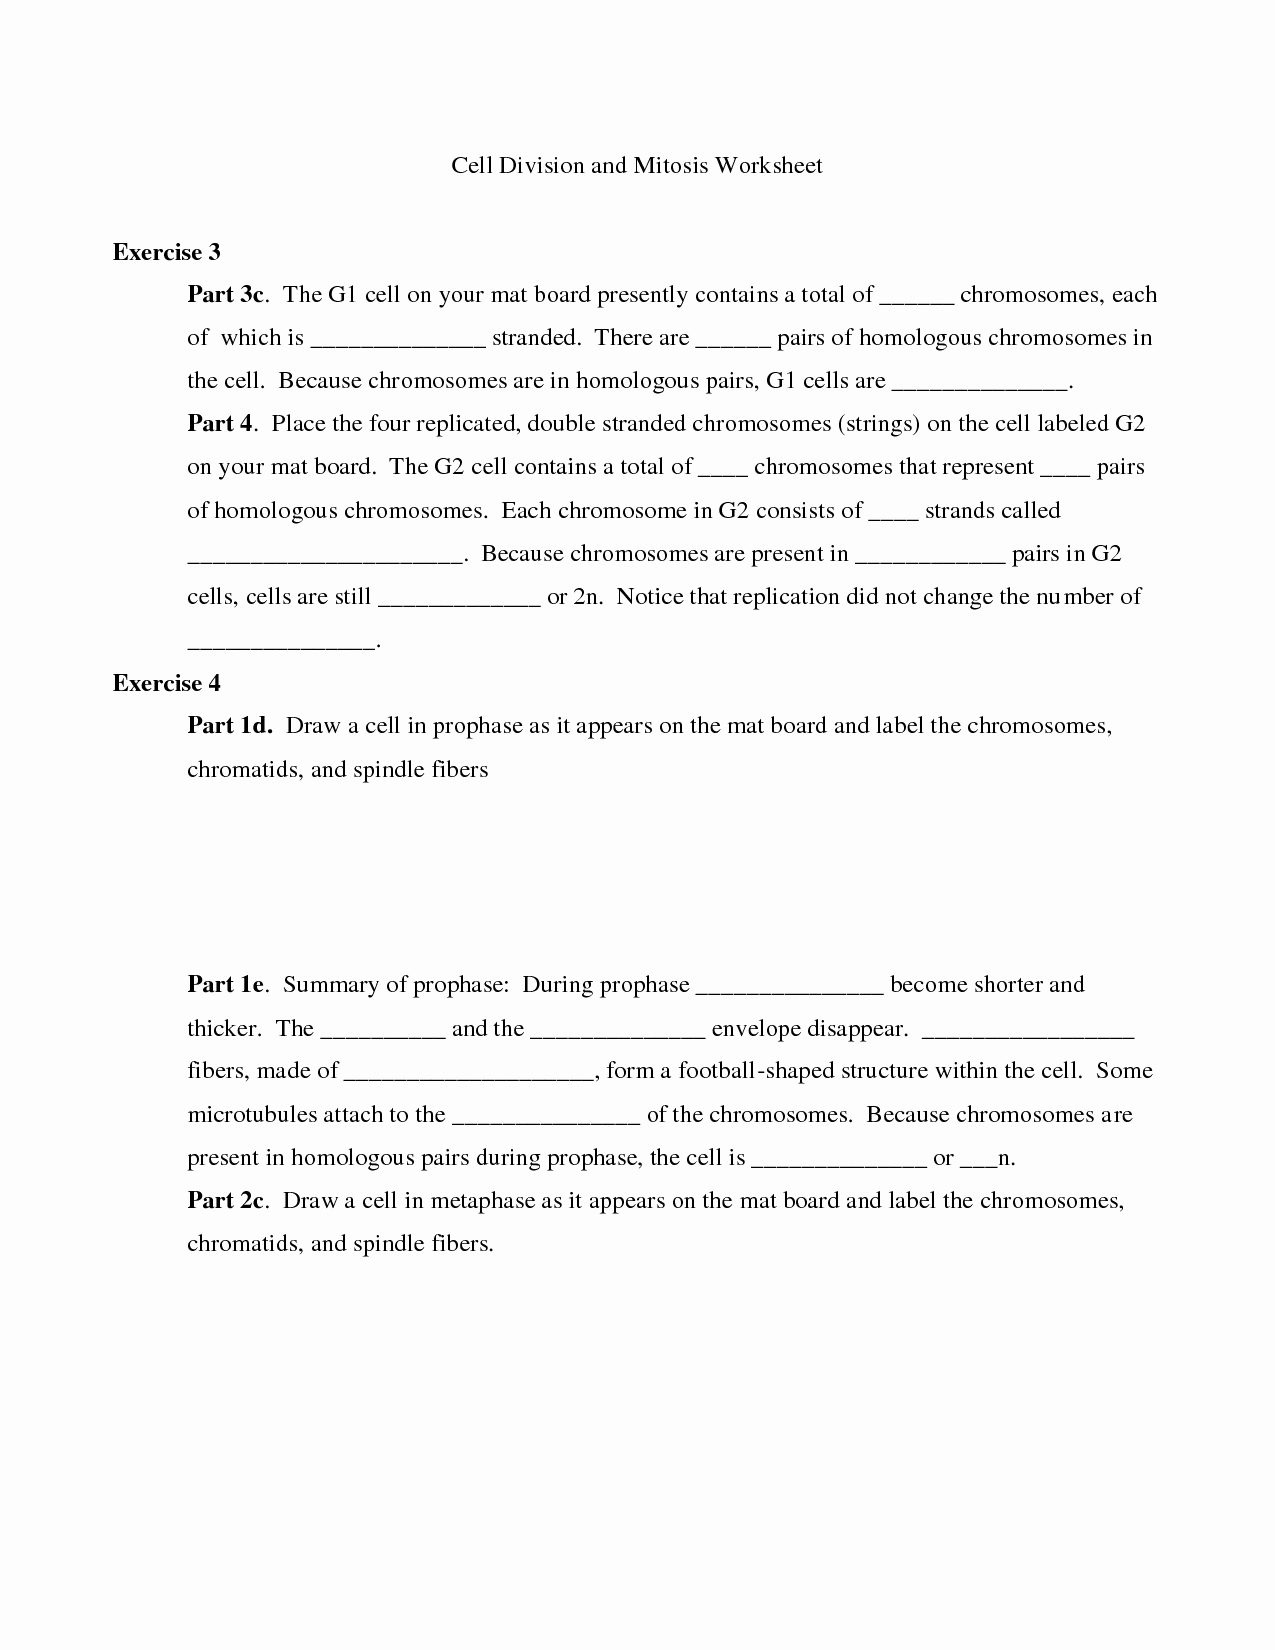 Cell Cycle Worksheet Answer Key New 18 Best Of Cell Cycle Review Worksheet Answers